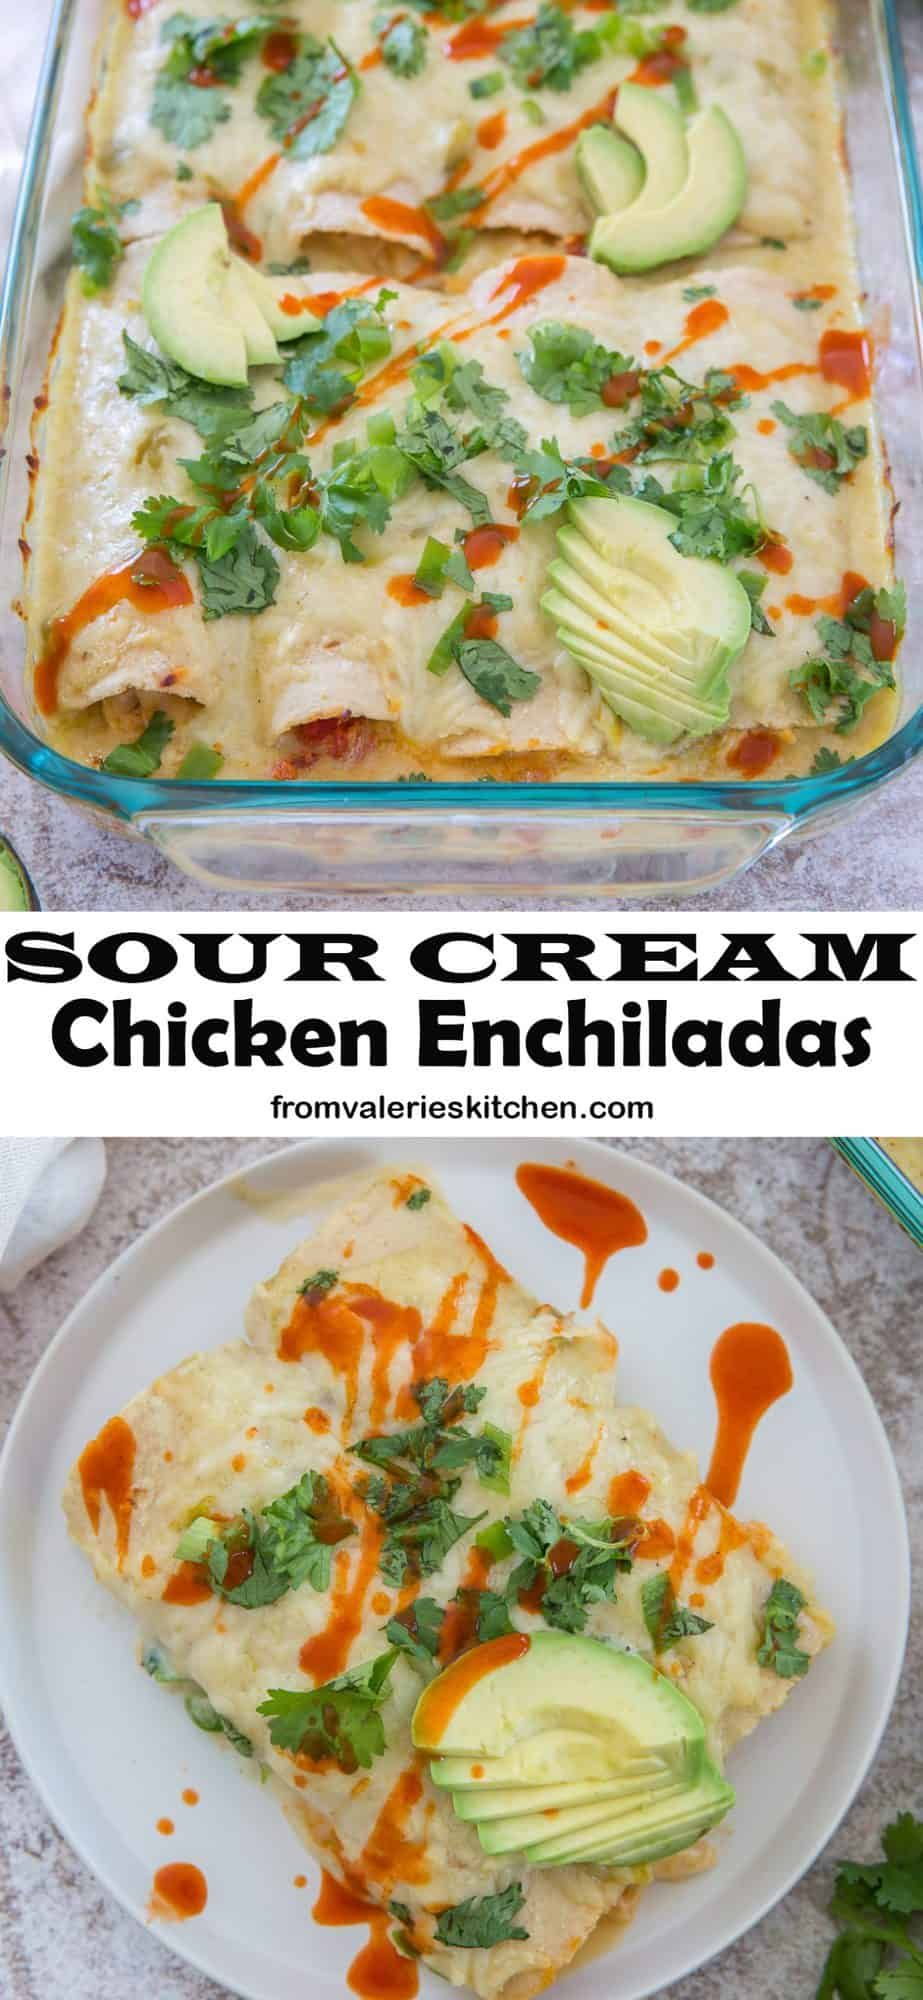 A Tasty Sour Cream Sauce Studded With Green Chiles And A Delicious Blend Of Spices Graces These Sour Cream In 2020 Sour Cream Chicken Mexican Food Recipes Food Dishes